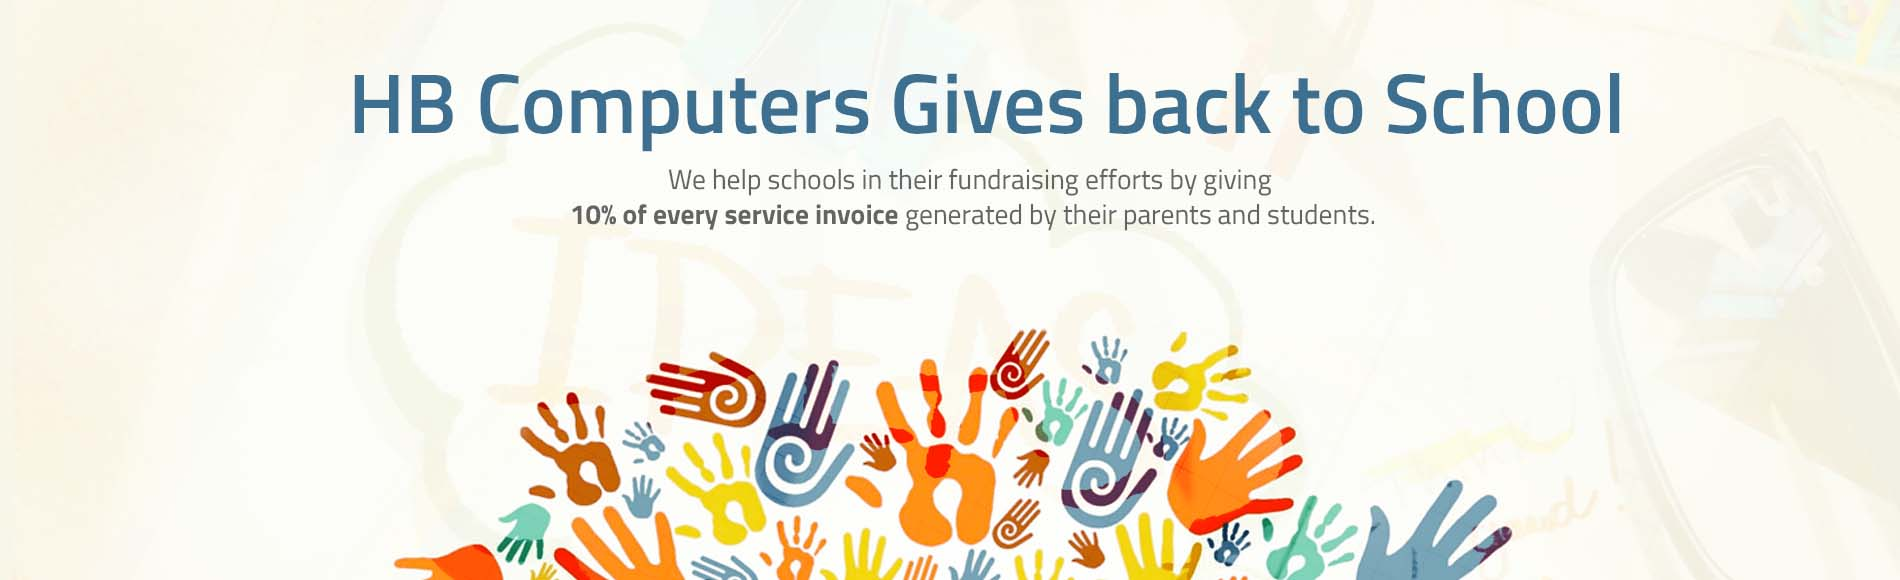 HB Computers Gives Back to Schools